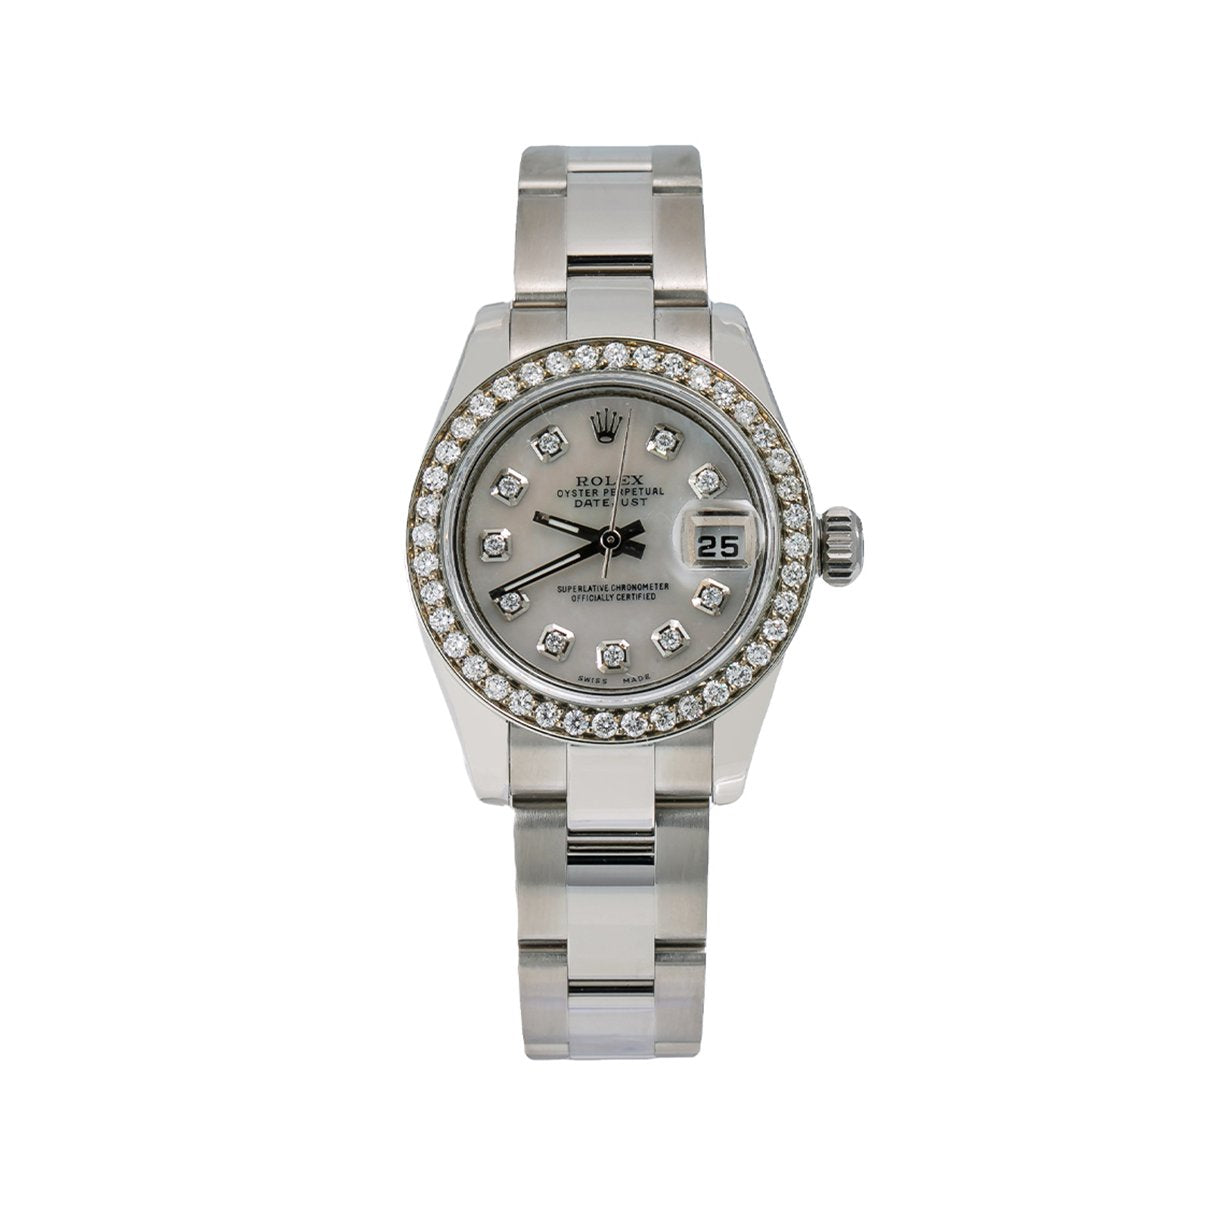 Rolex Datejust Diamond Watch, 179160 26mm, Silver Diamond Dial With 0.90 CT Diamonds